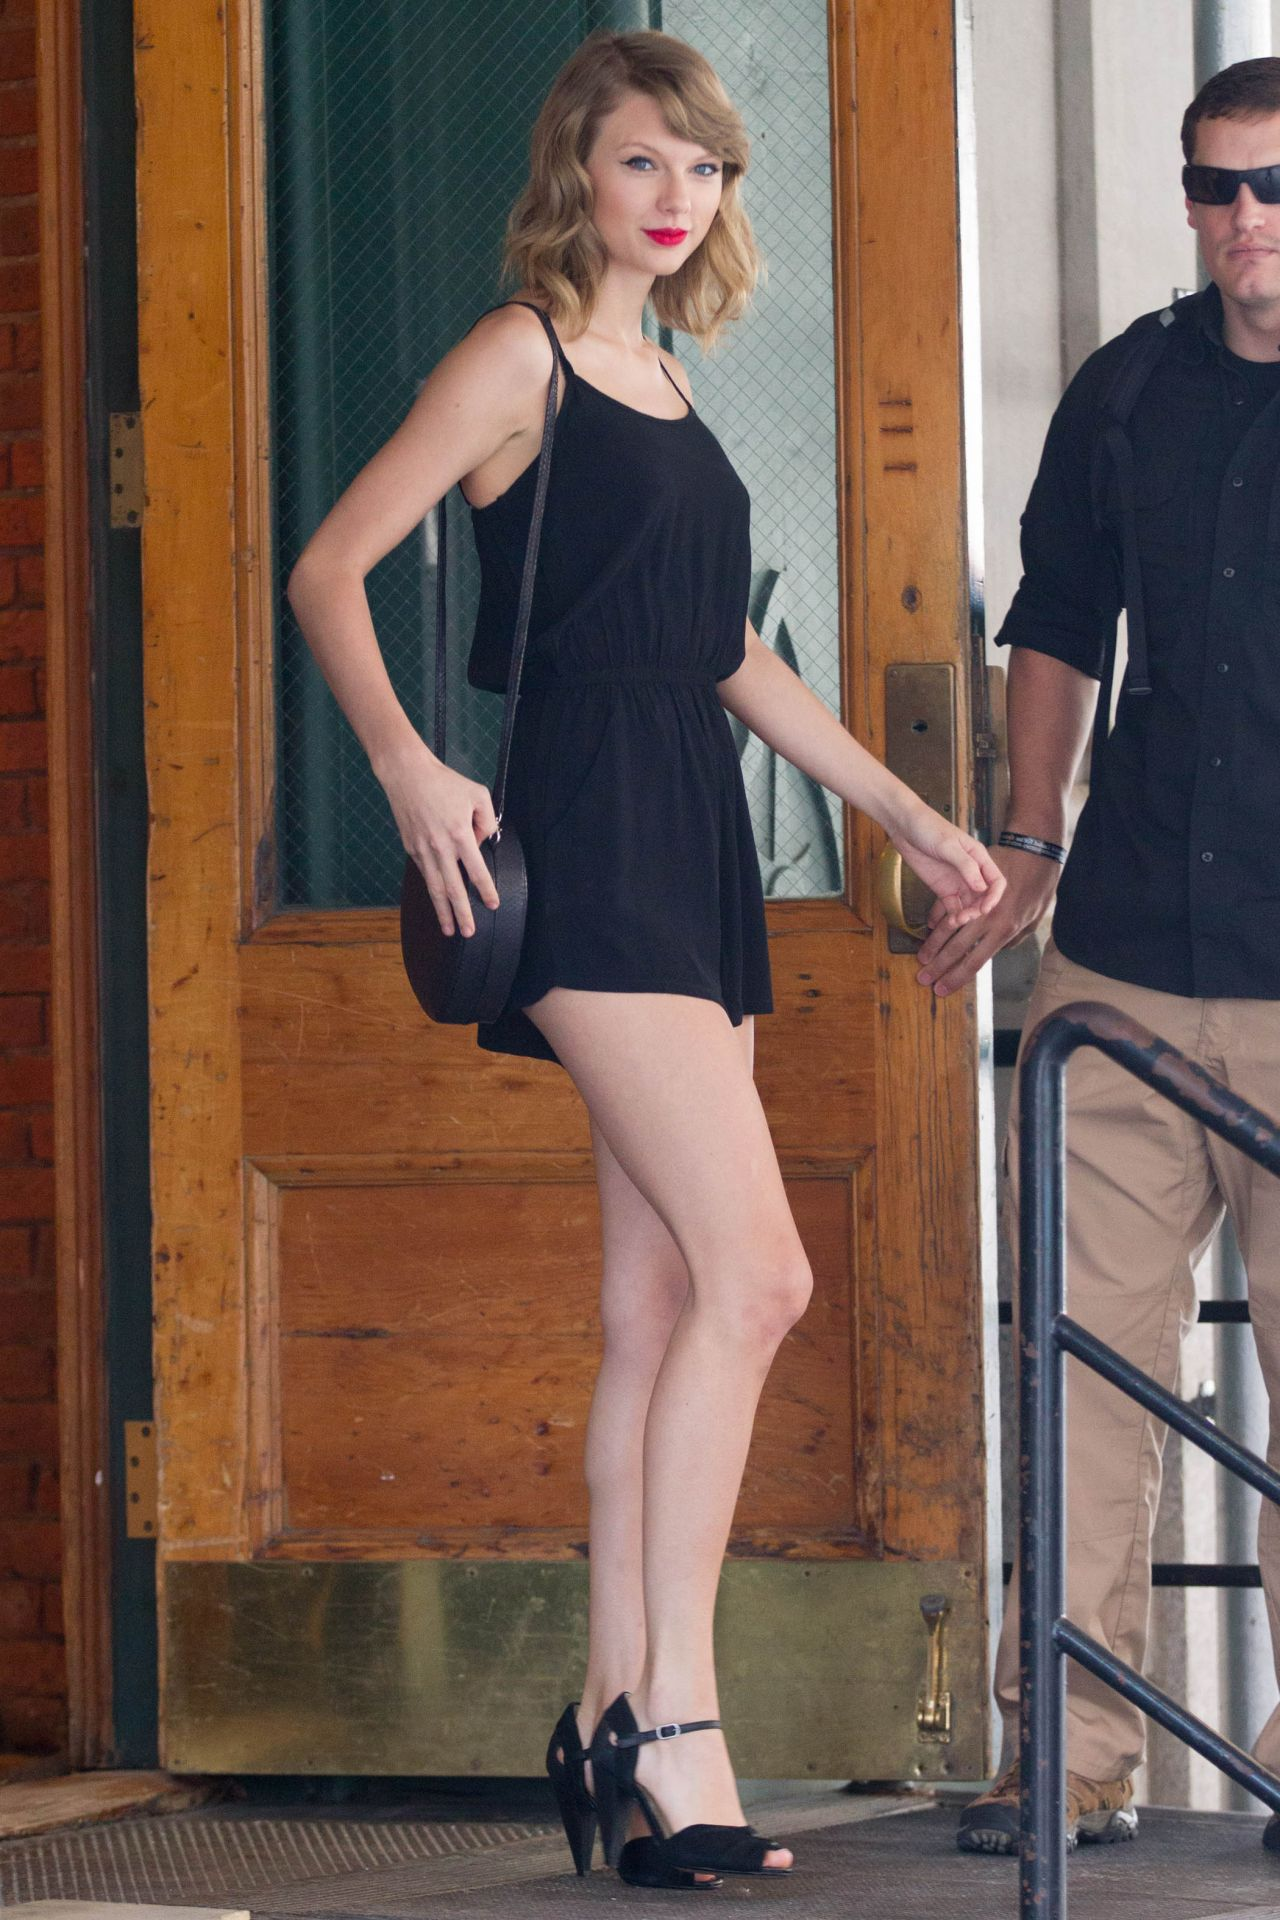 Cat In Fall Wallpaper Taylor Swift Every Day Leggy Out In Nyc June 2014